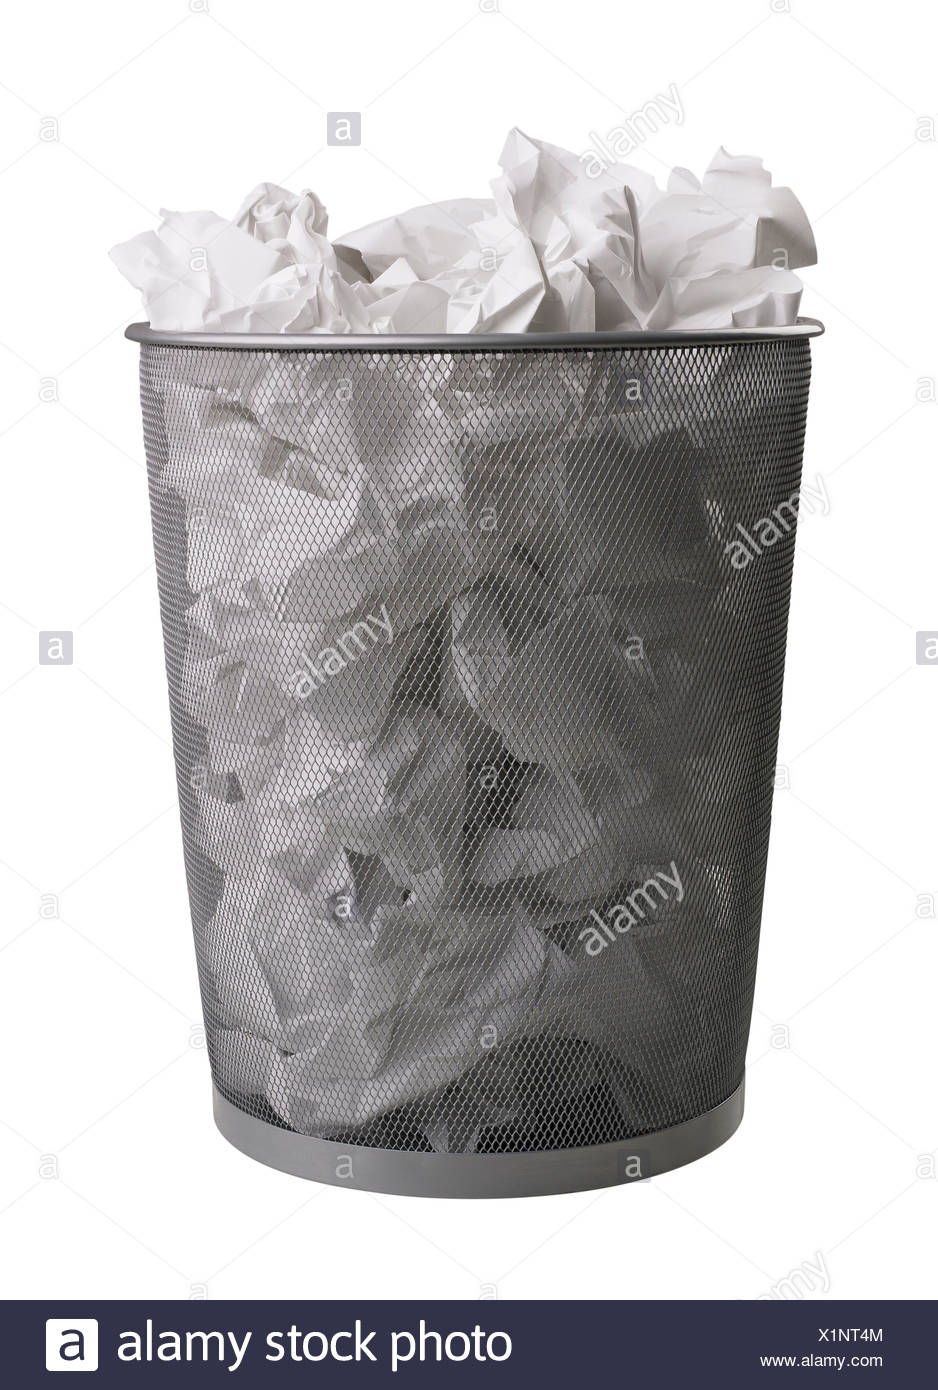 Still life of trash can - Stock Image